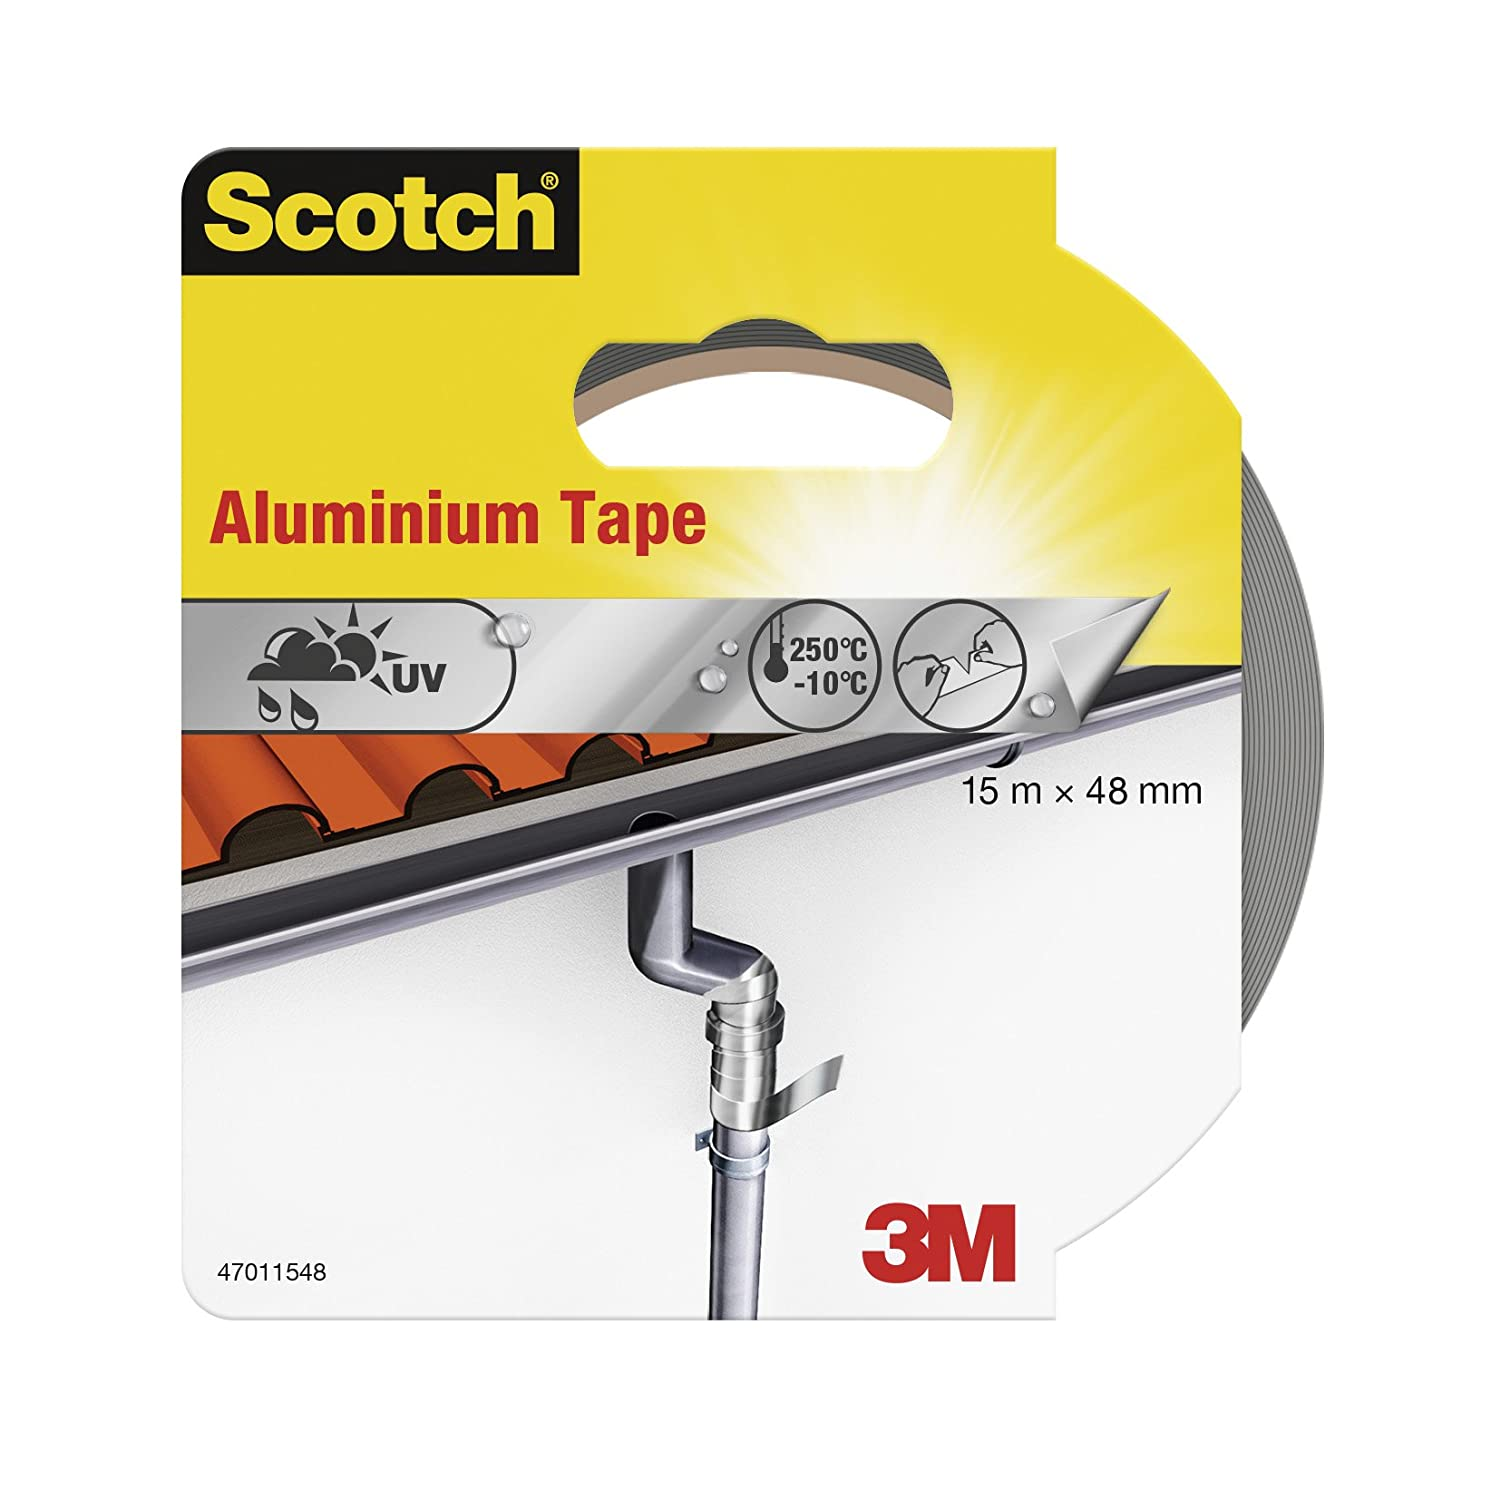 Scotch 47011548 15 m x 48 mm Aluminium Tape 3M